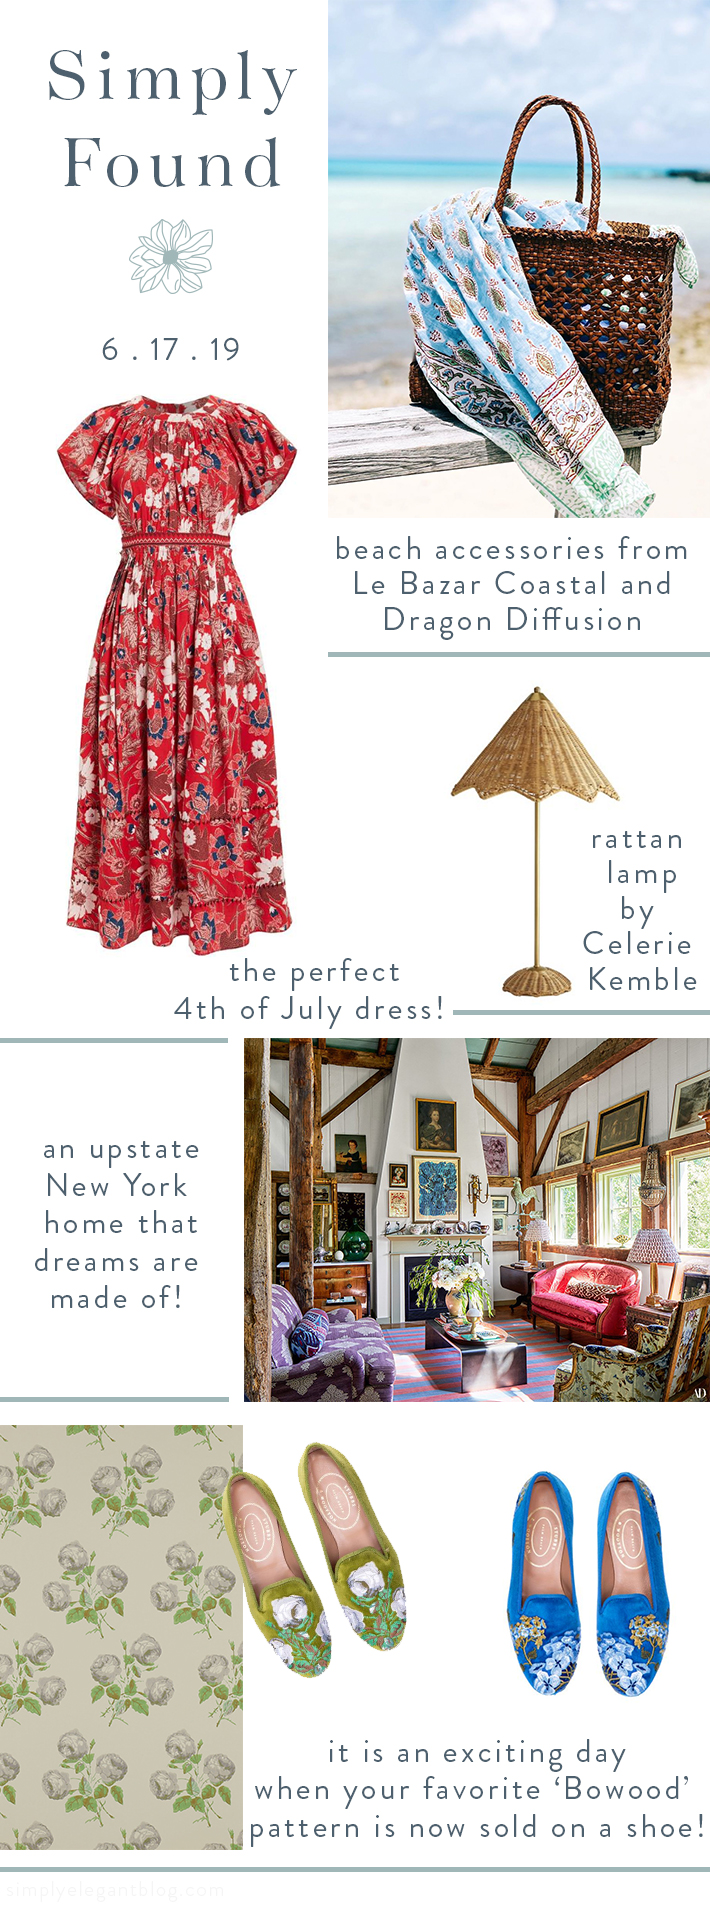 Simply Found Shopping List - Dragon Diffusion Bag, Le Bazar Coastal, Mieke Ten Have, Colfax & Fowler for Stubbs & Wootton